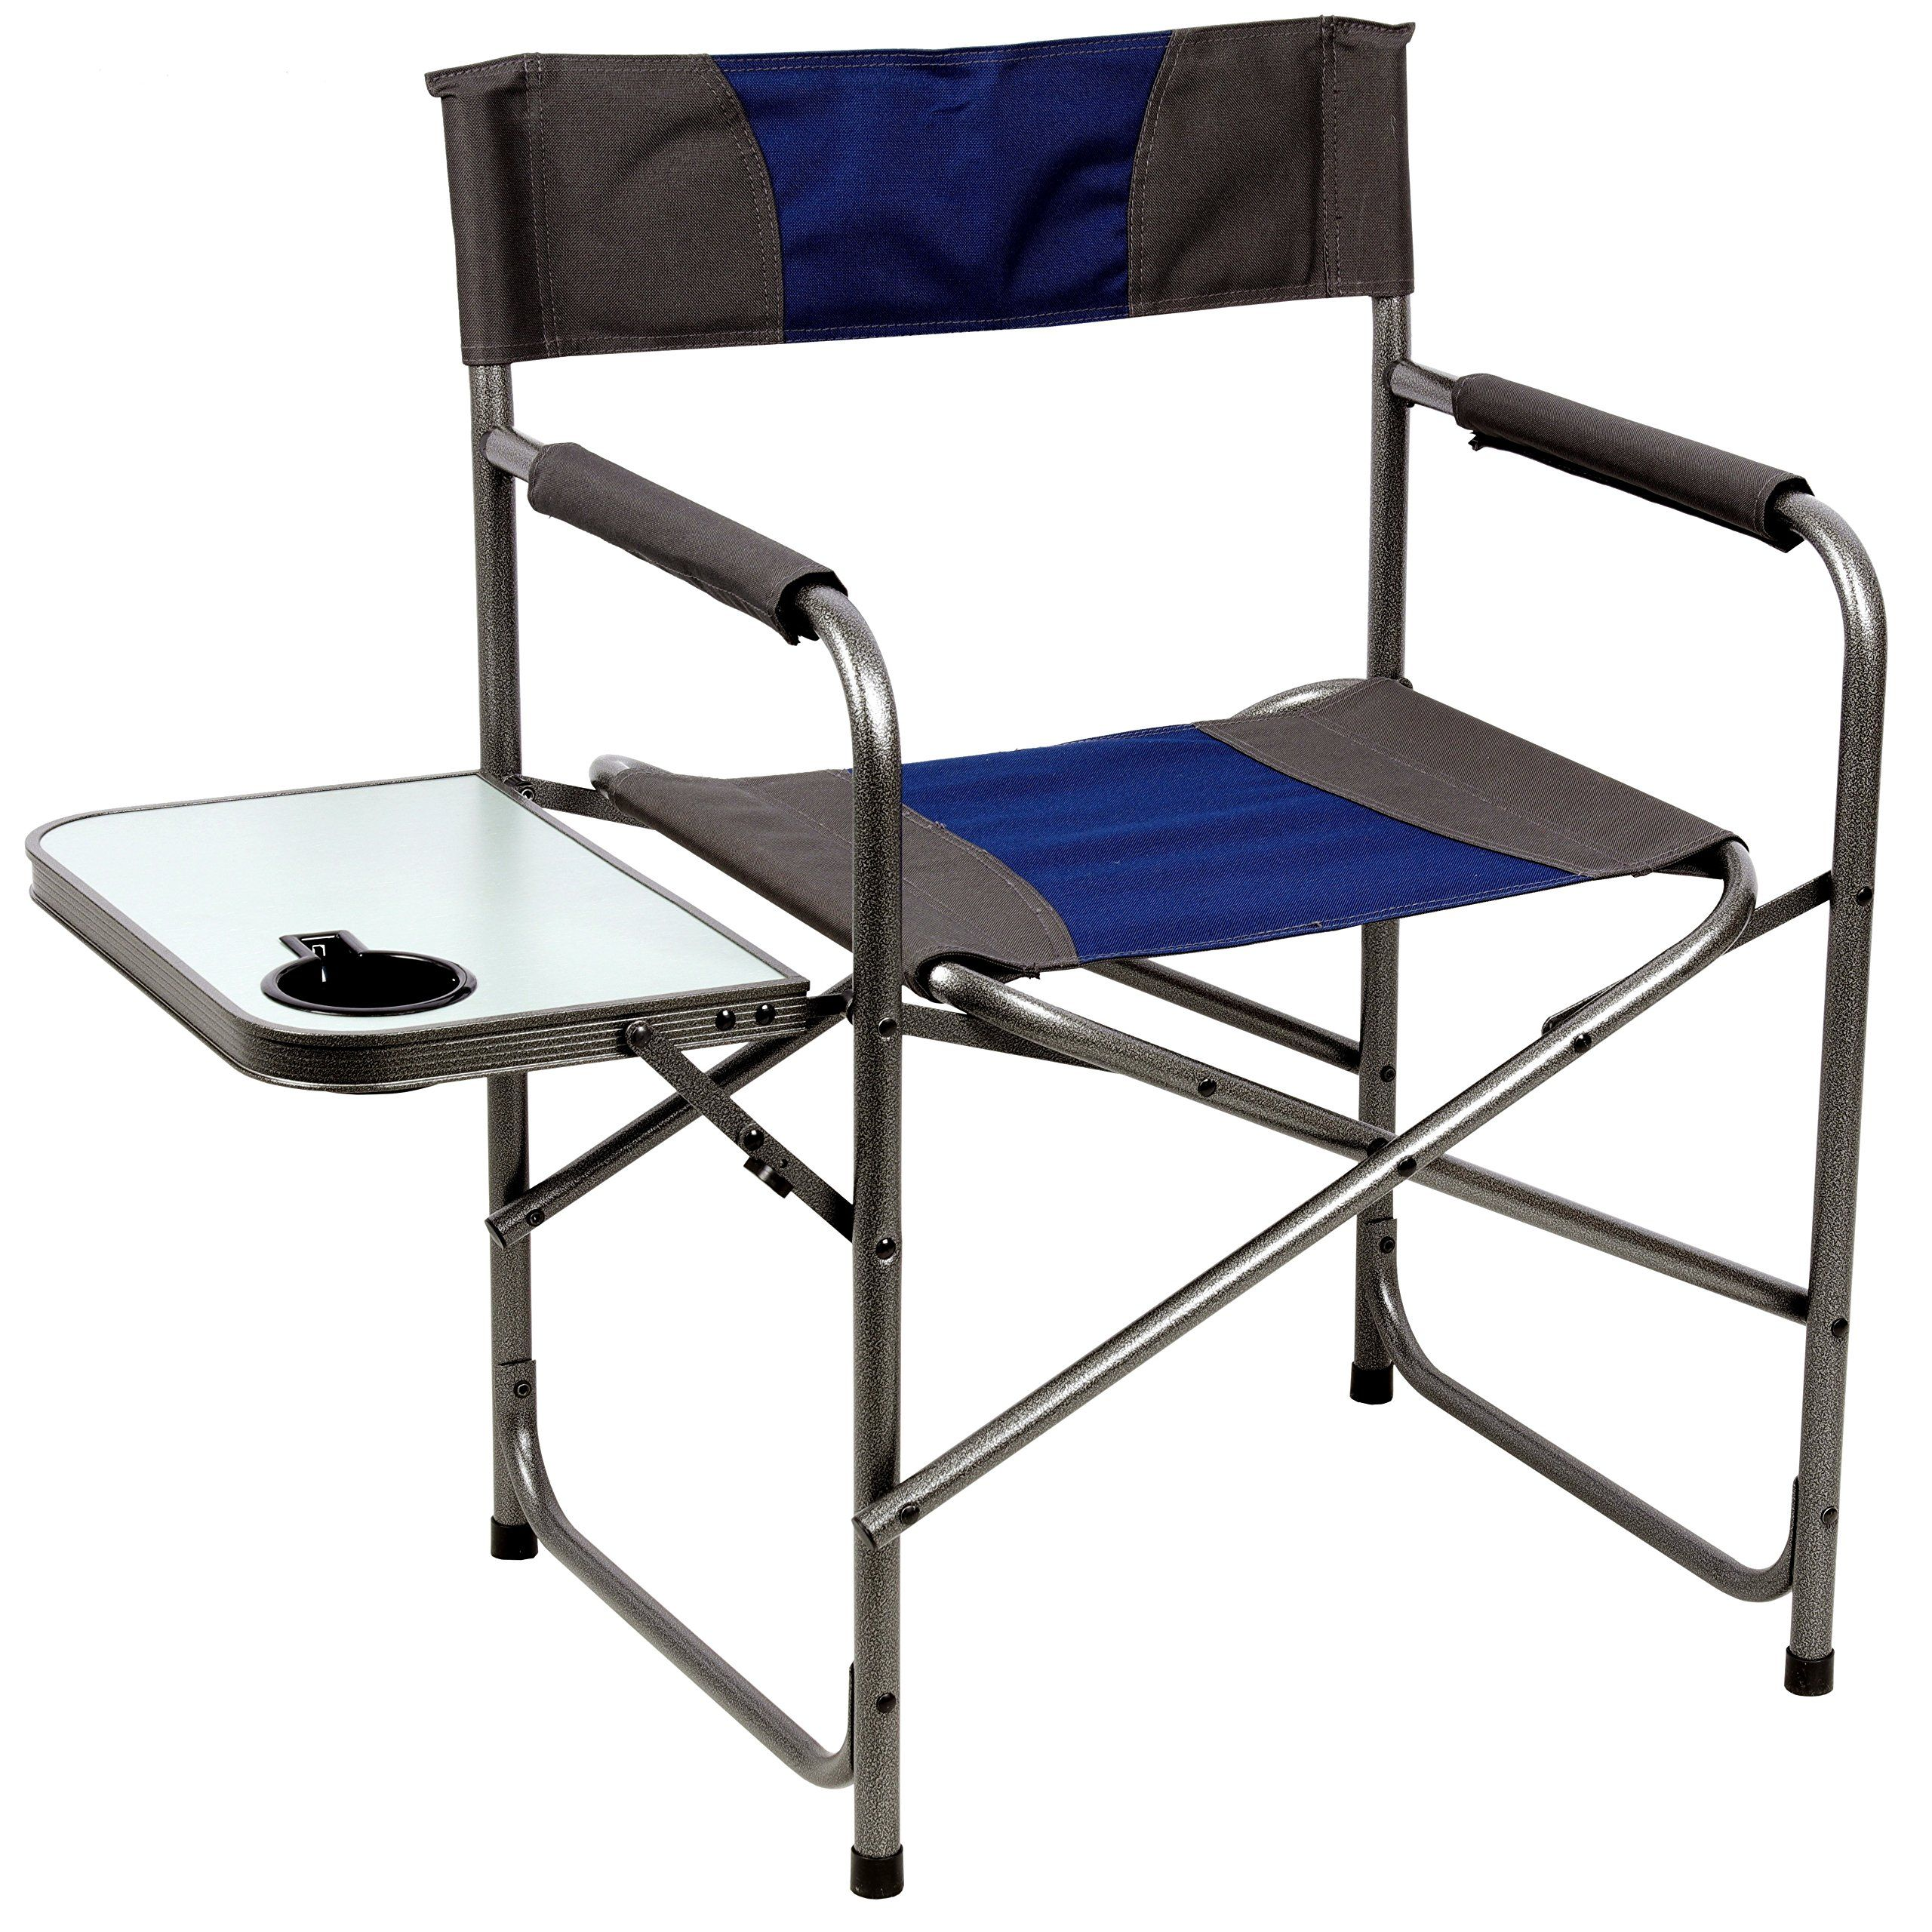 Onwaysports Aluminum Frame Director Chair With Side Table Lightweight Foldable Portable For Camping 2 Pack Review Camping Chairs Directors Chair Side Table